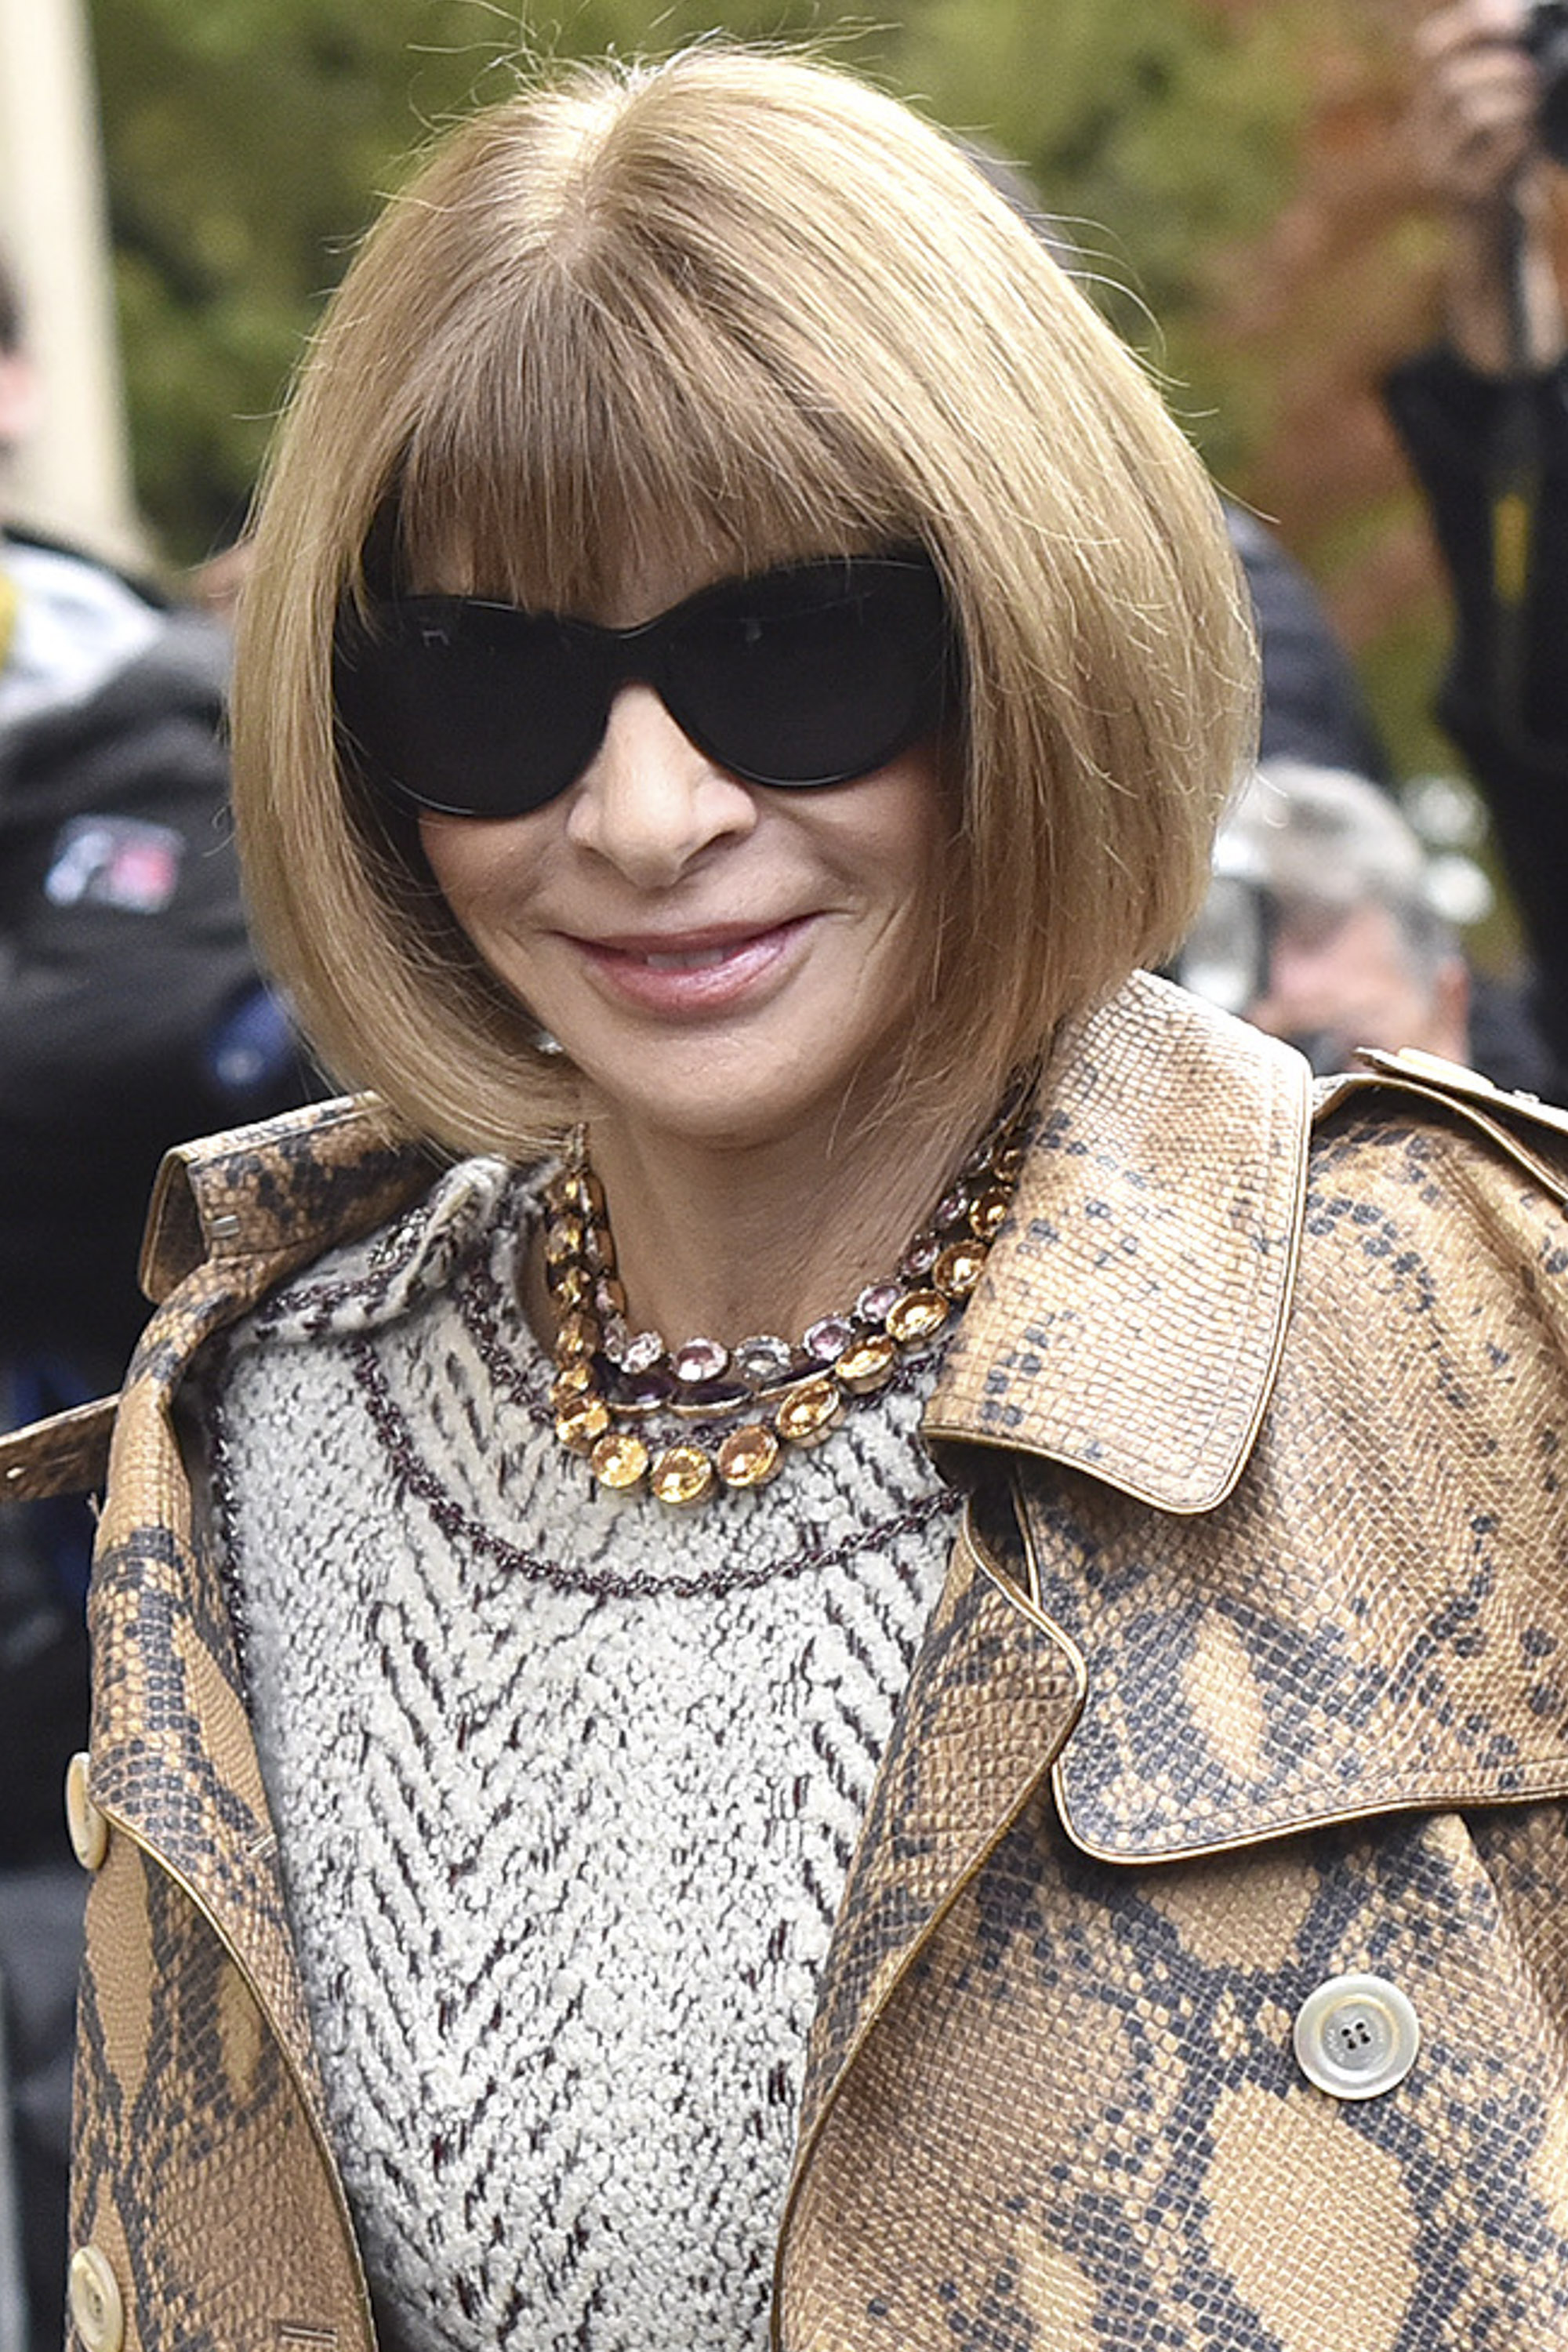 Anna Wintour at Chanel Fashion Show during the Paris Fashion Week S/S 2016 on Oct. 6, 2015.